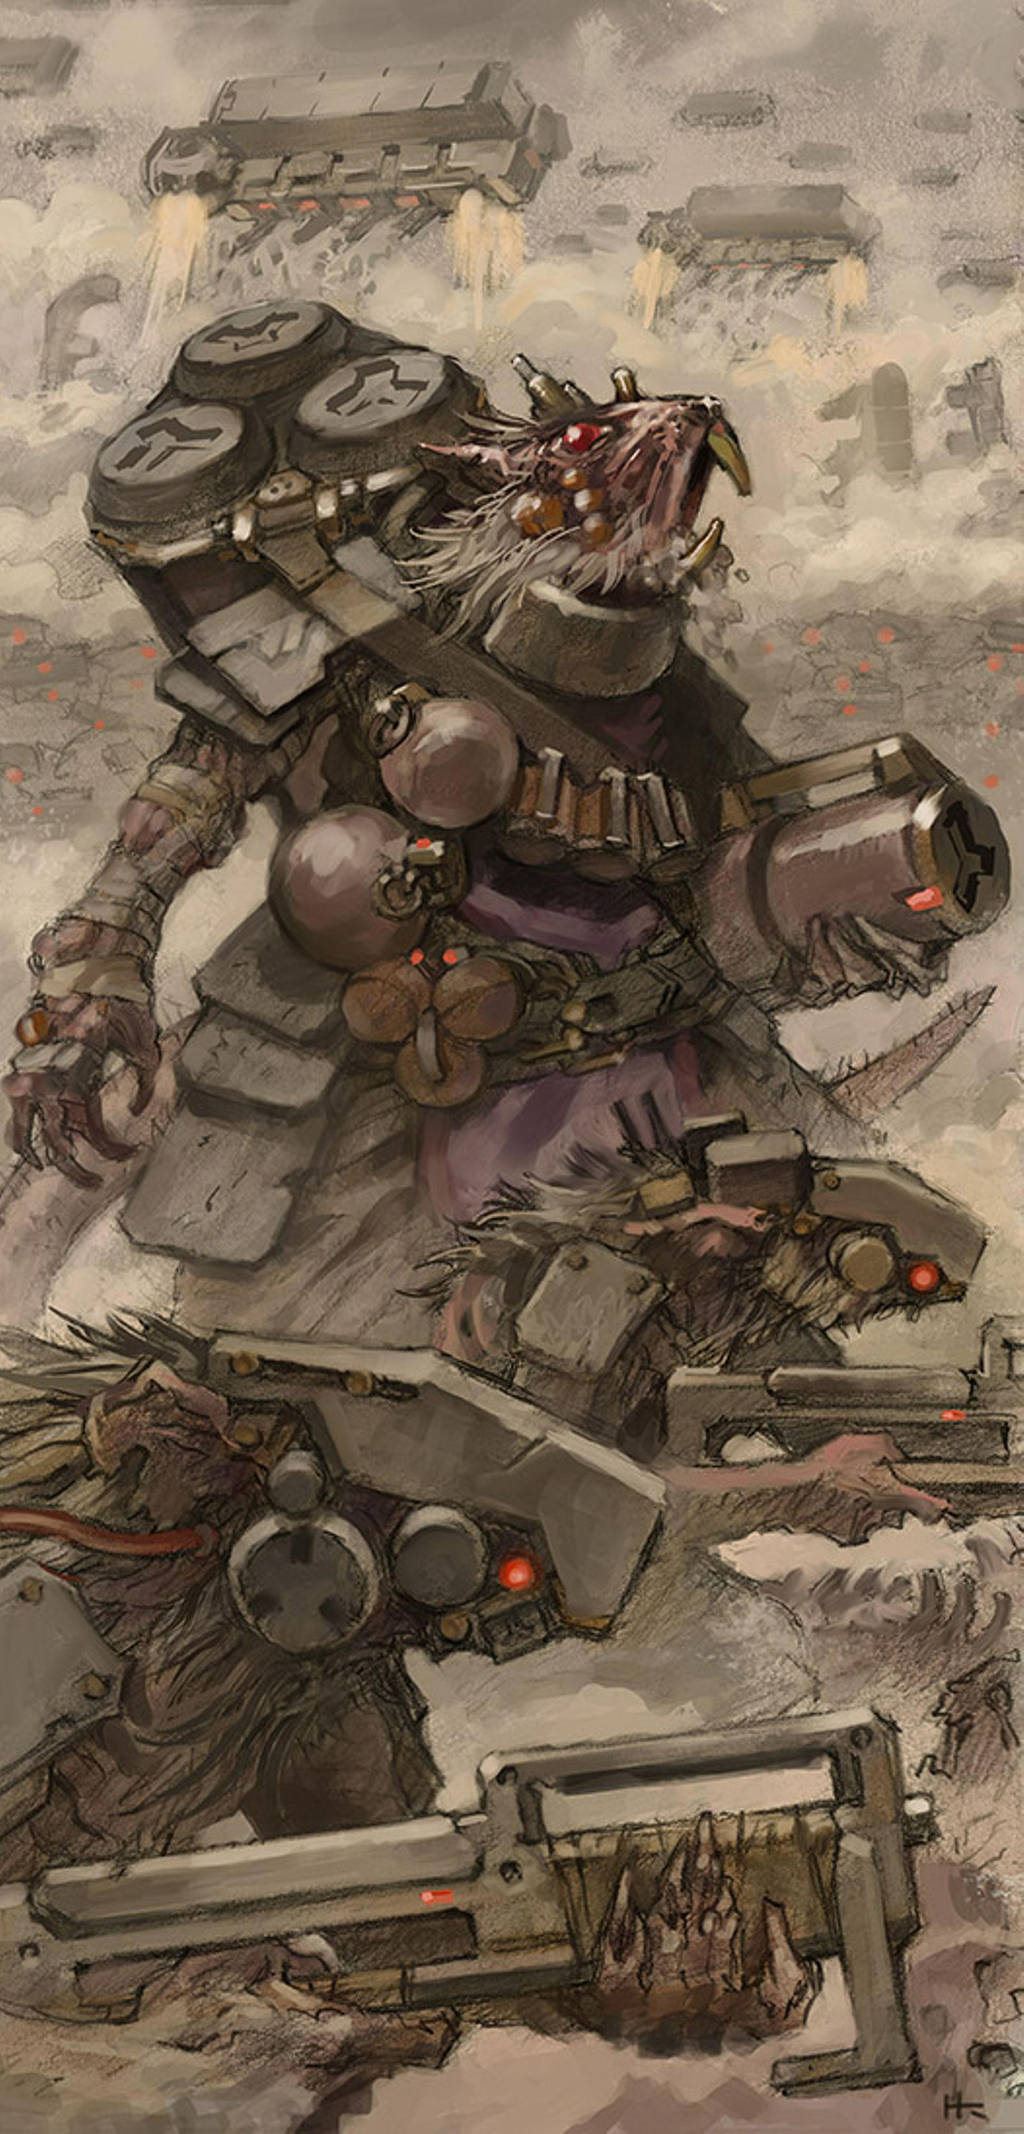 Fanart Friday # 18 - WH40K - Star Skaven by nehsan-darke